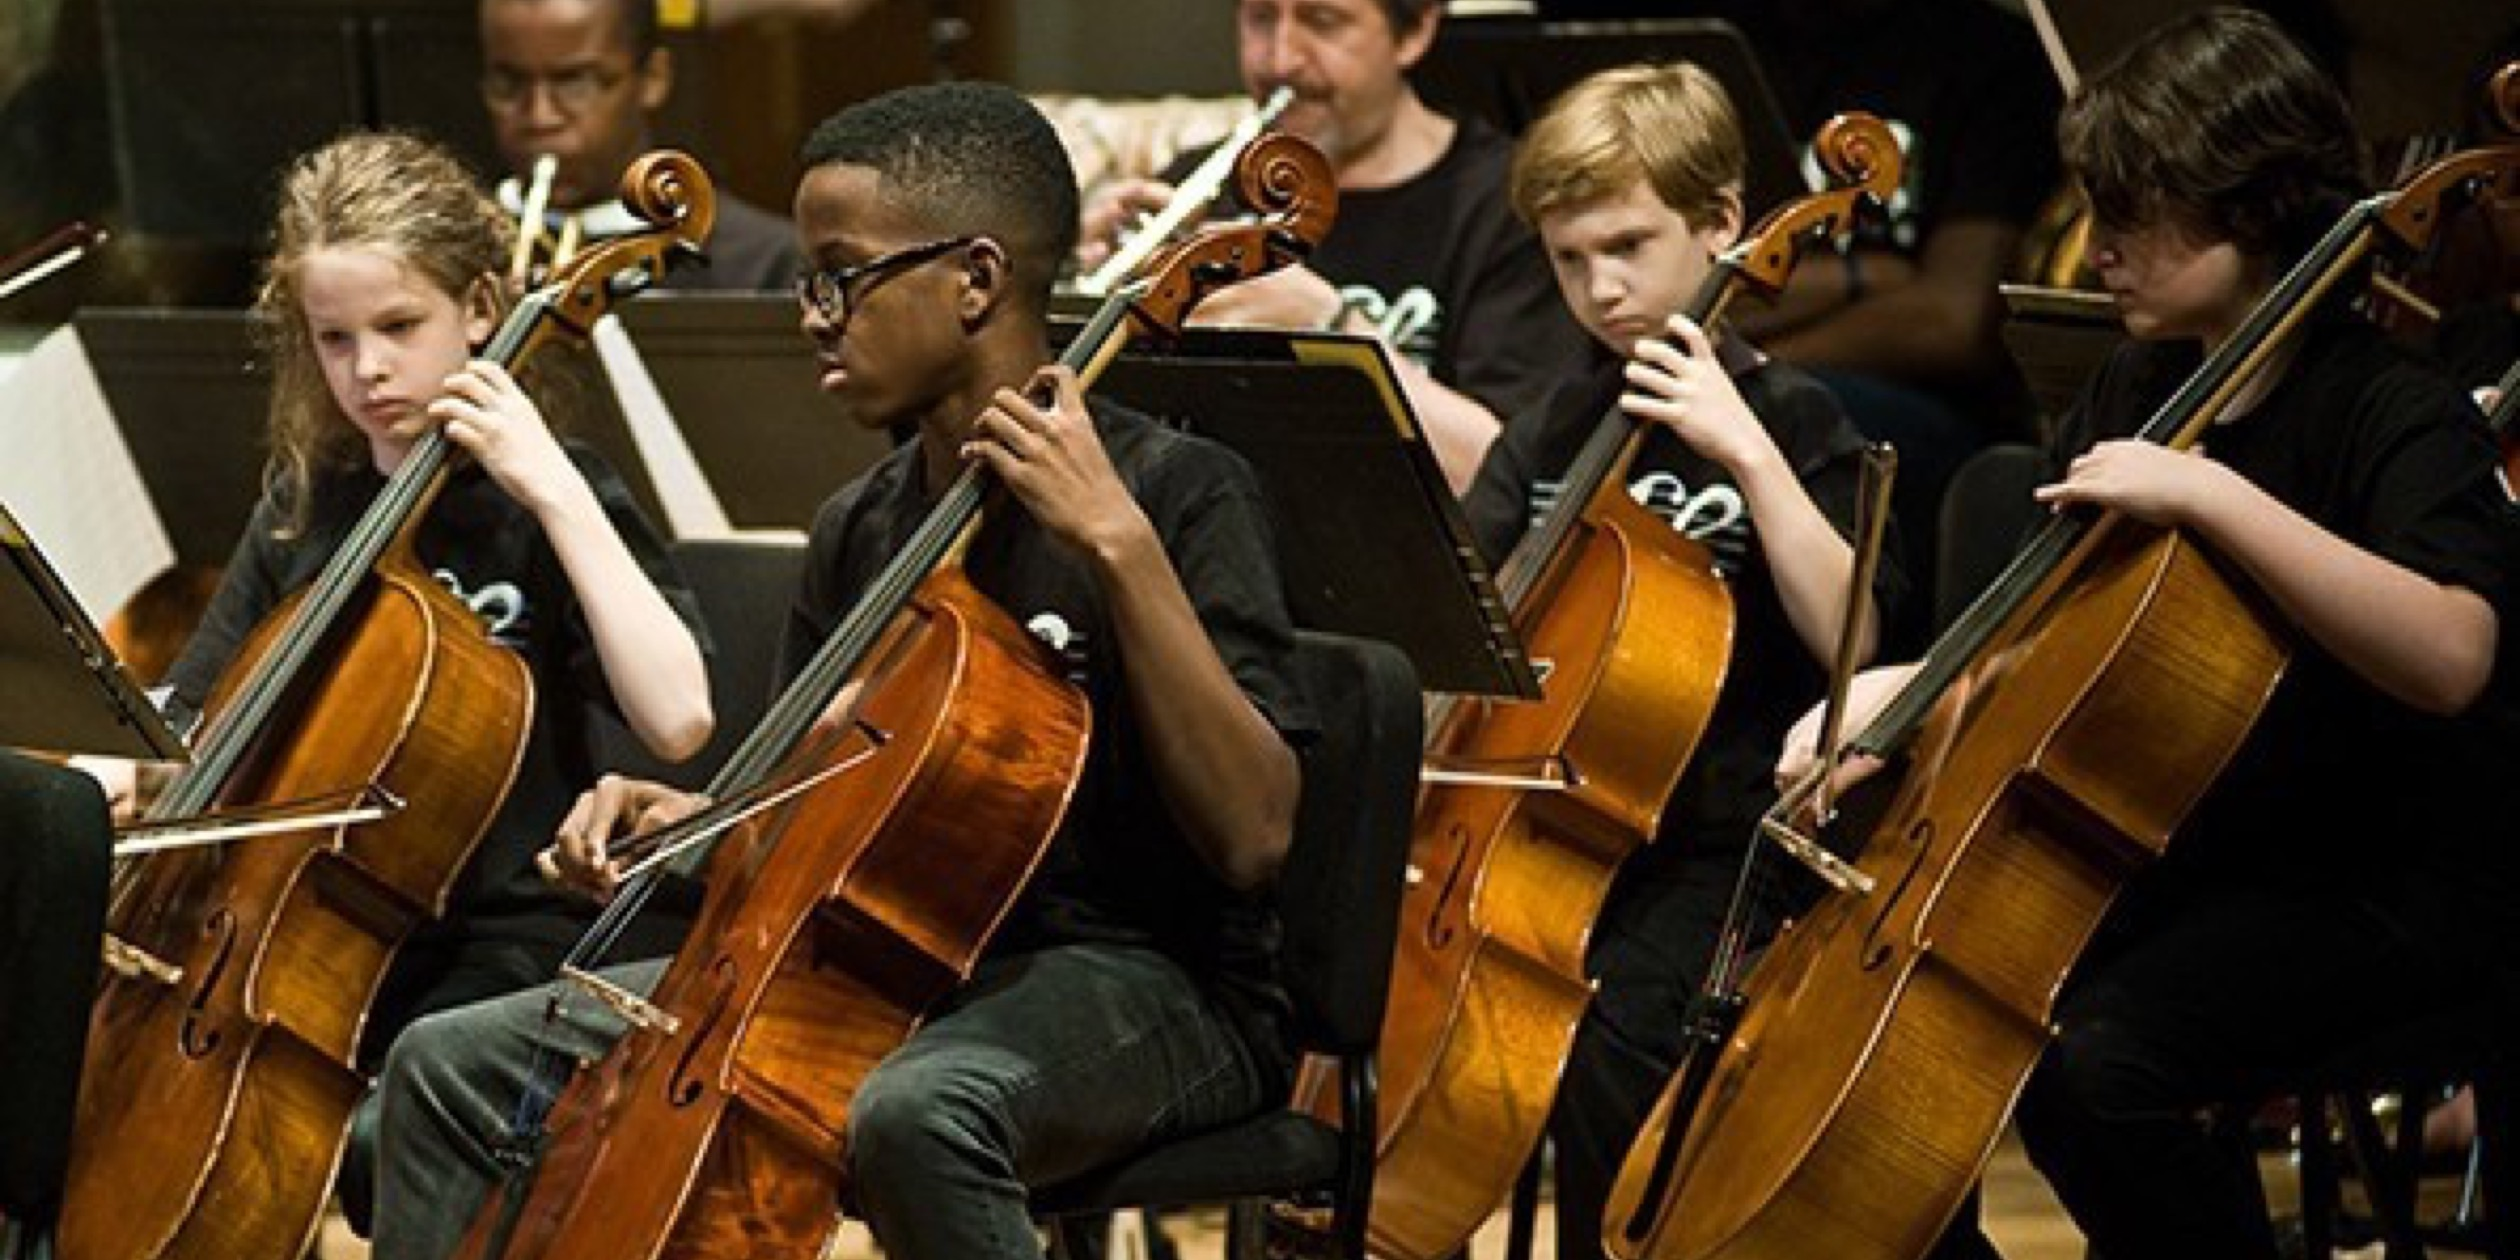 Auditions for Intermediate & Advanced String Ensembles are Sep 7.